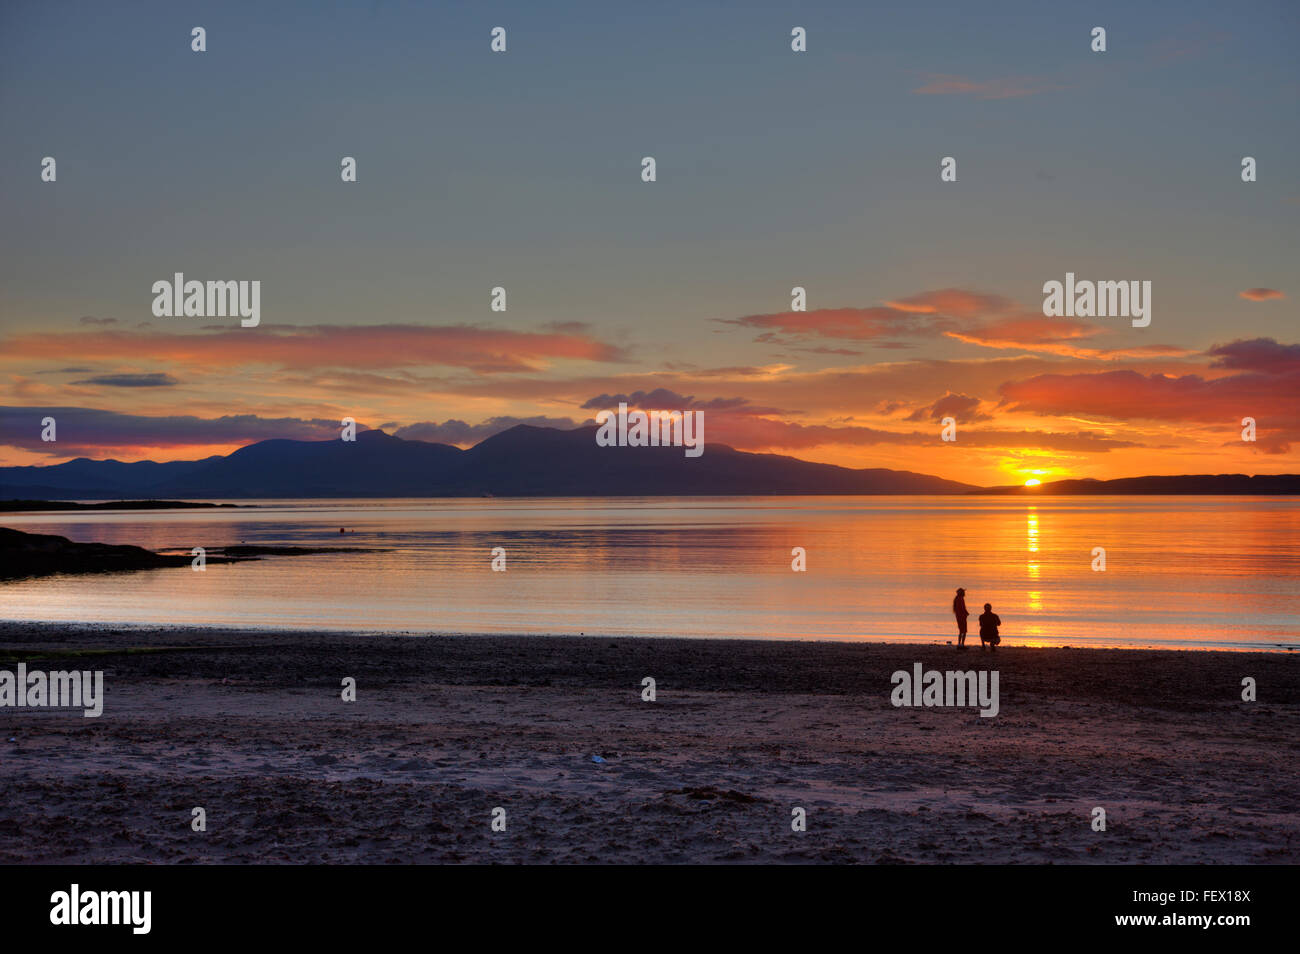 Sunset over Ganavan sands and a distant Mull, Oban, Argyll - Stock Image